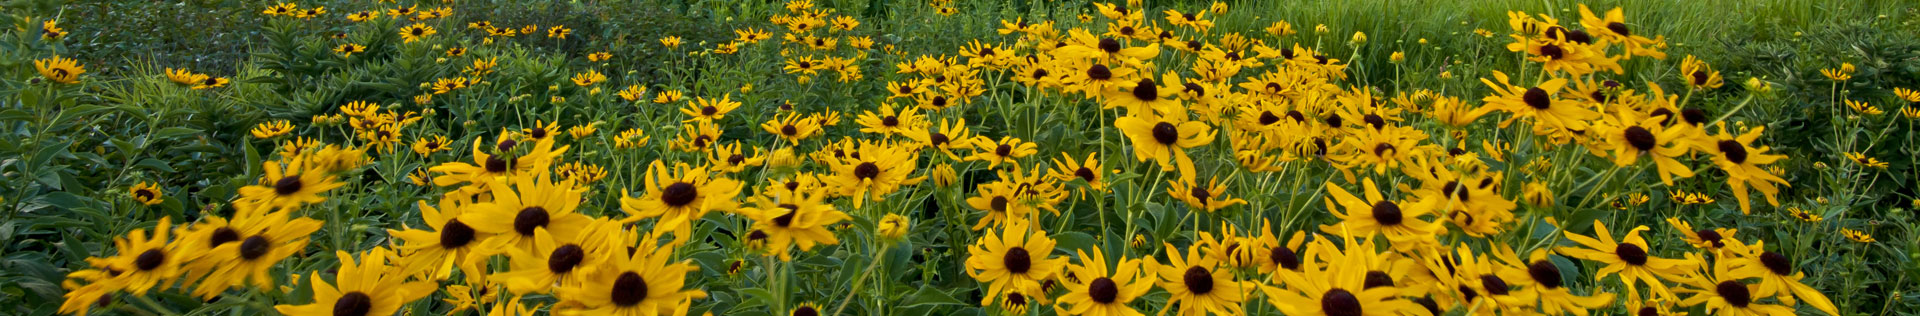 A photo of Gloriosa daisies in a field